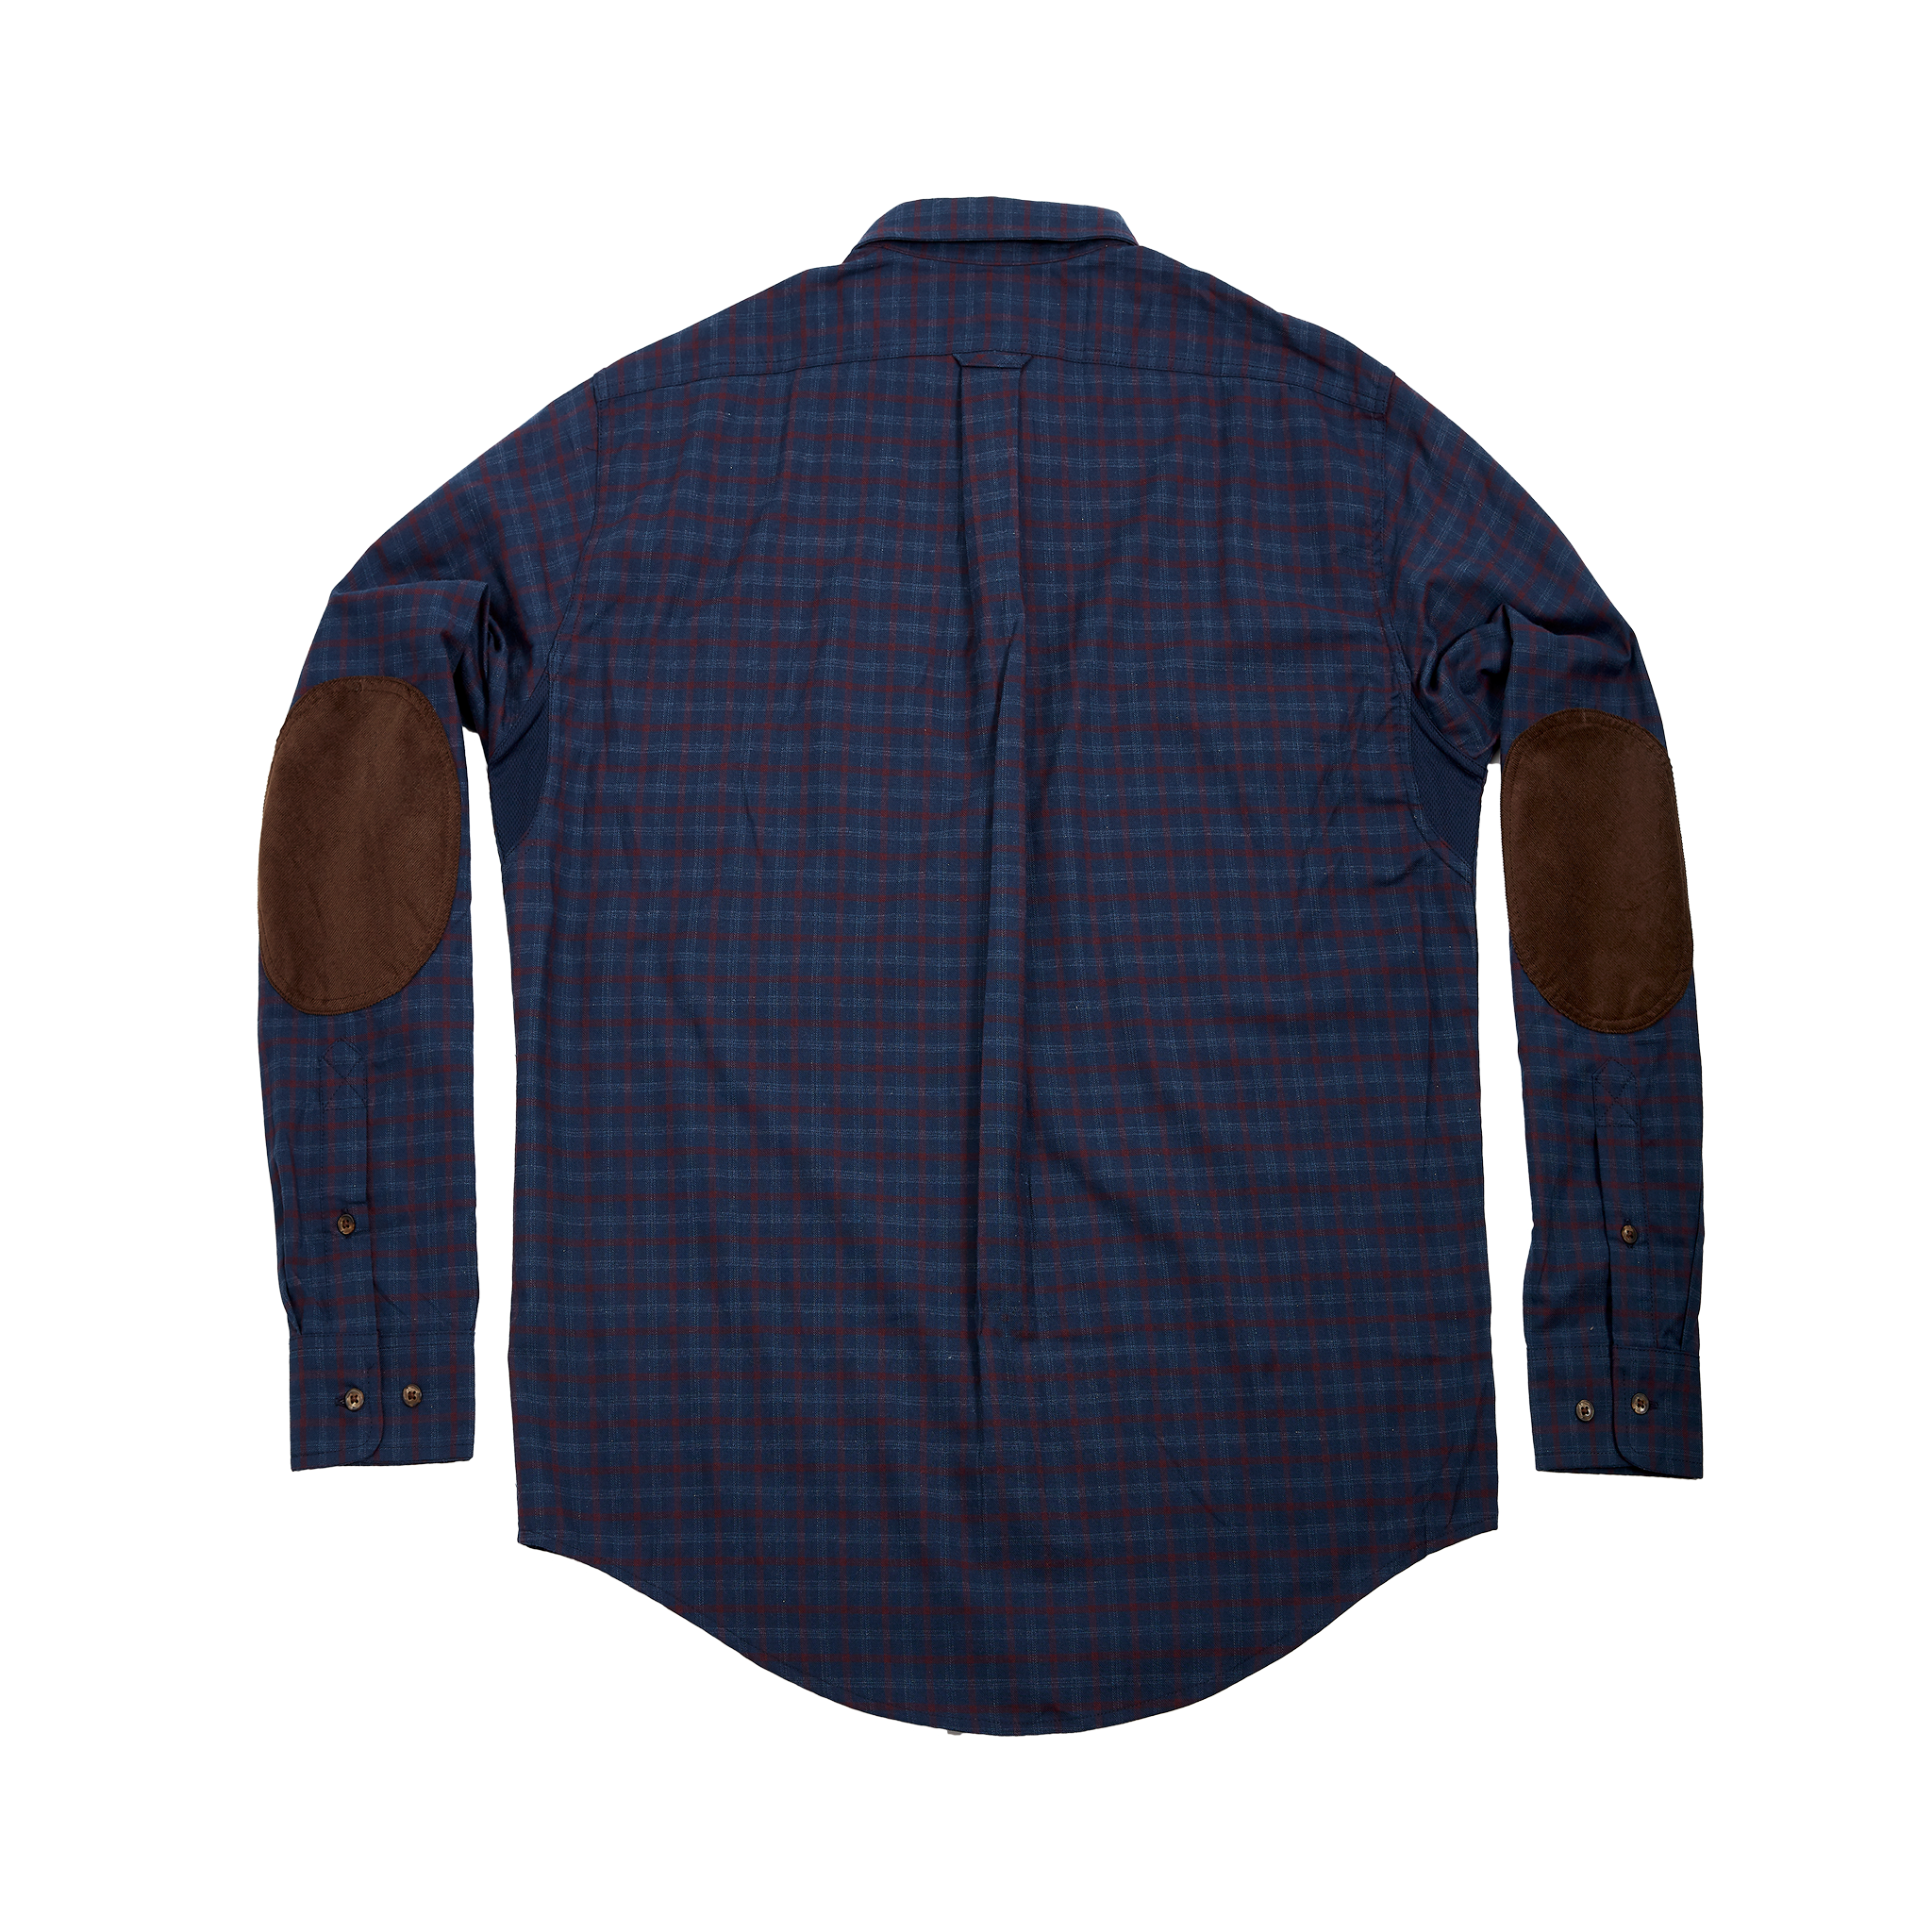 Premium Hunters Shirt, Coulter/Corduroy